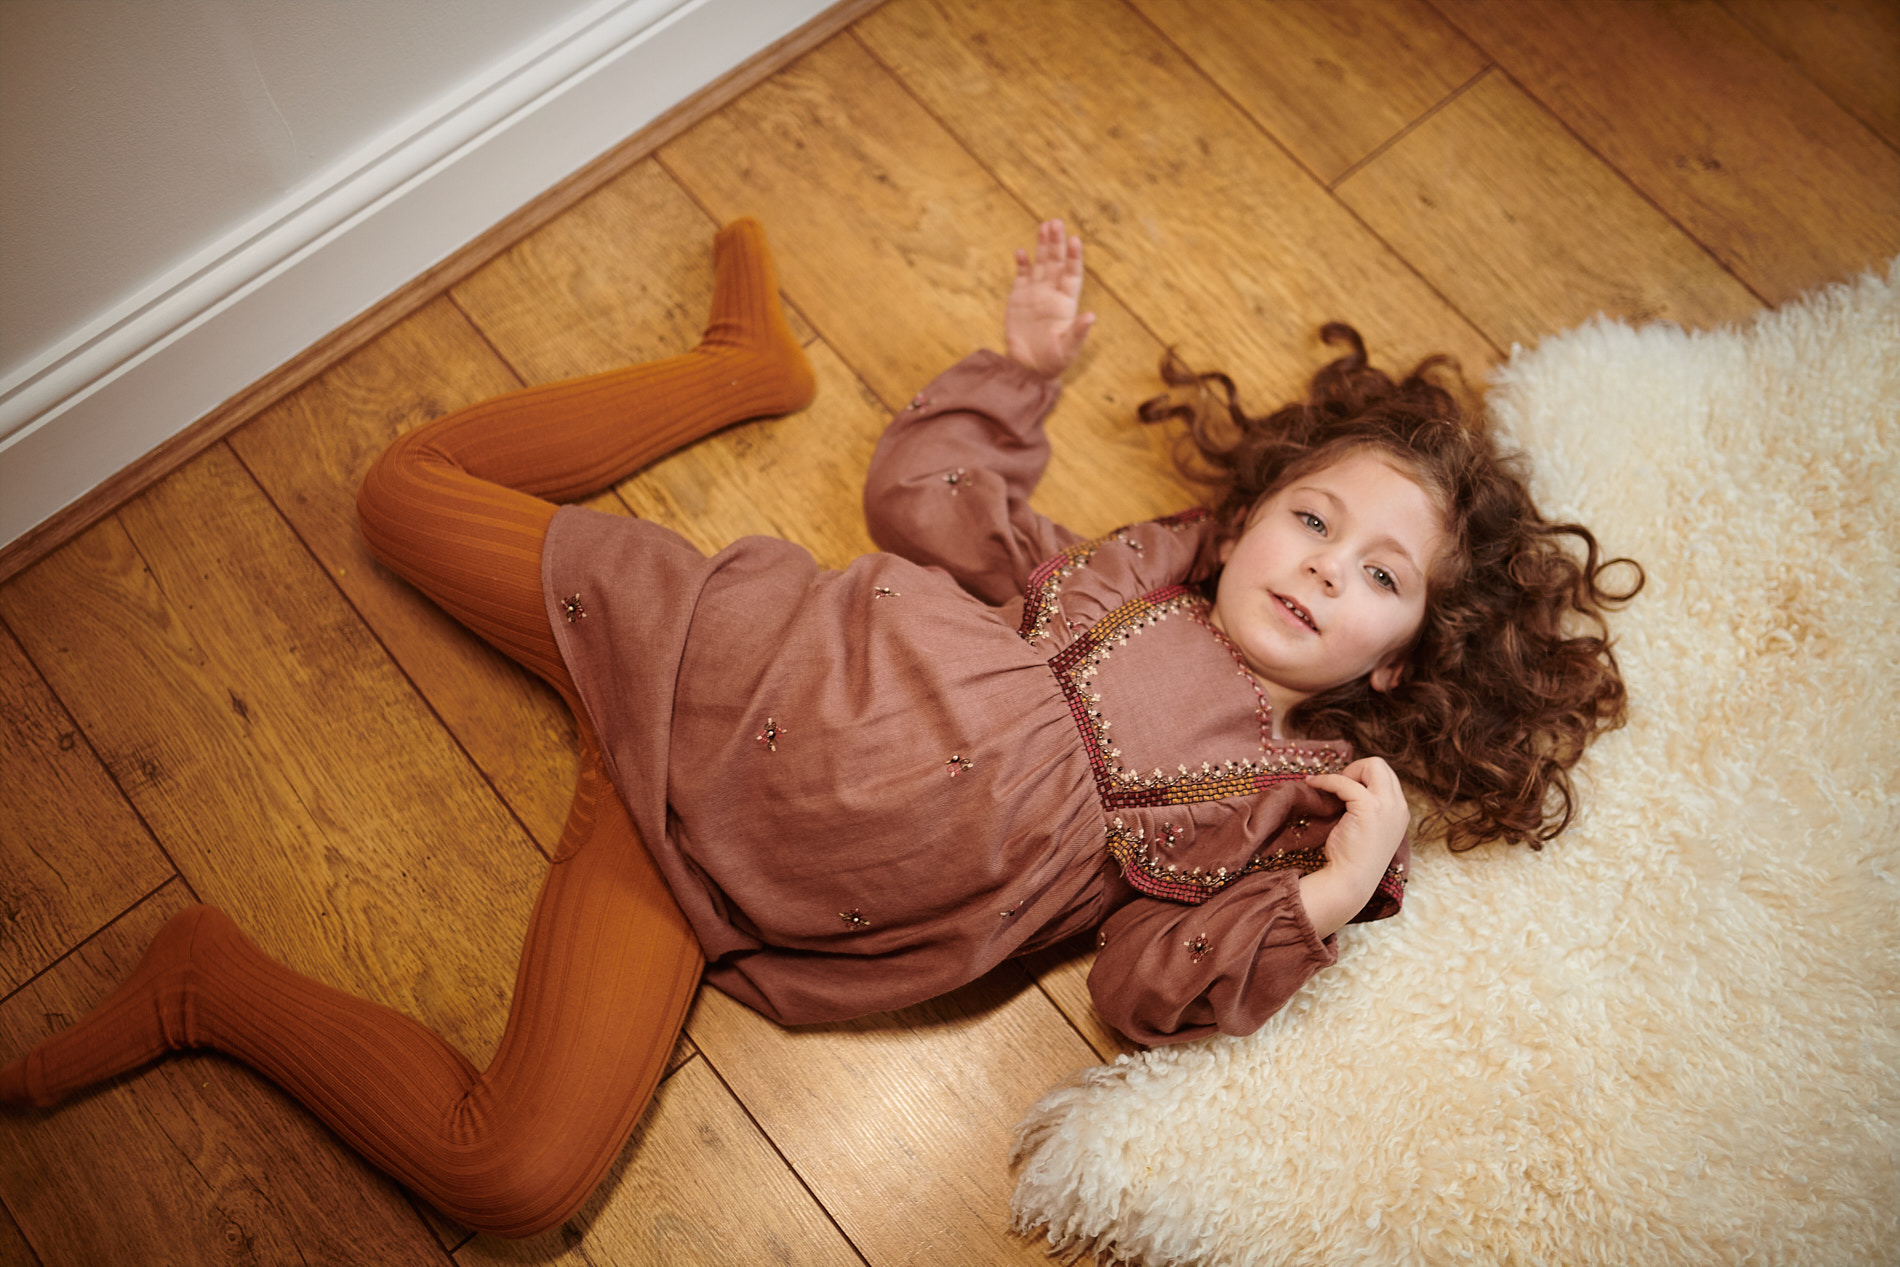 Photo taken for the website The Little Stylist, by Charlotte Kewley.